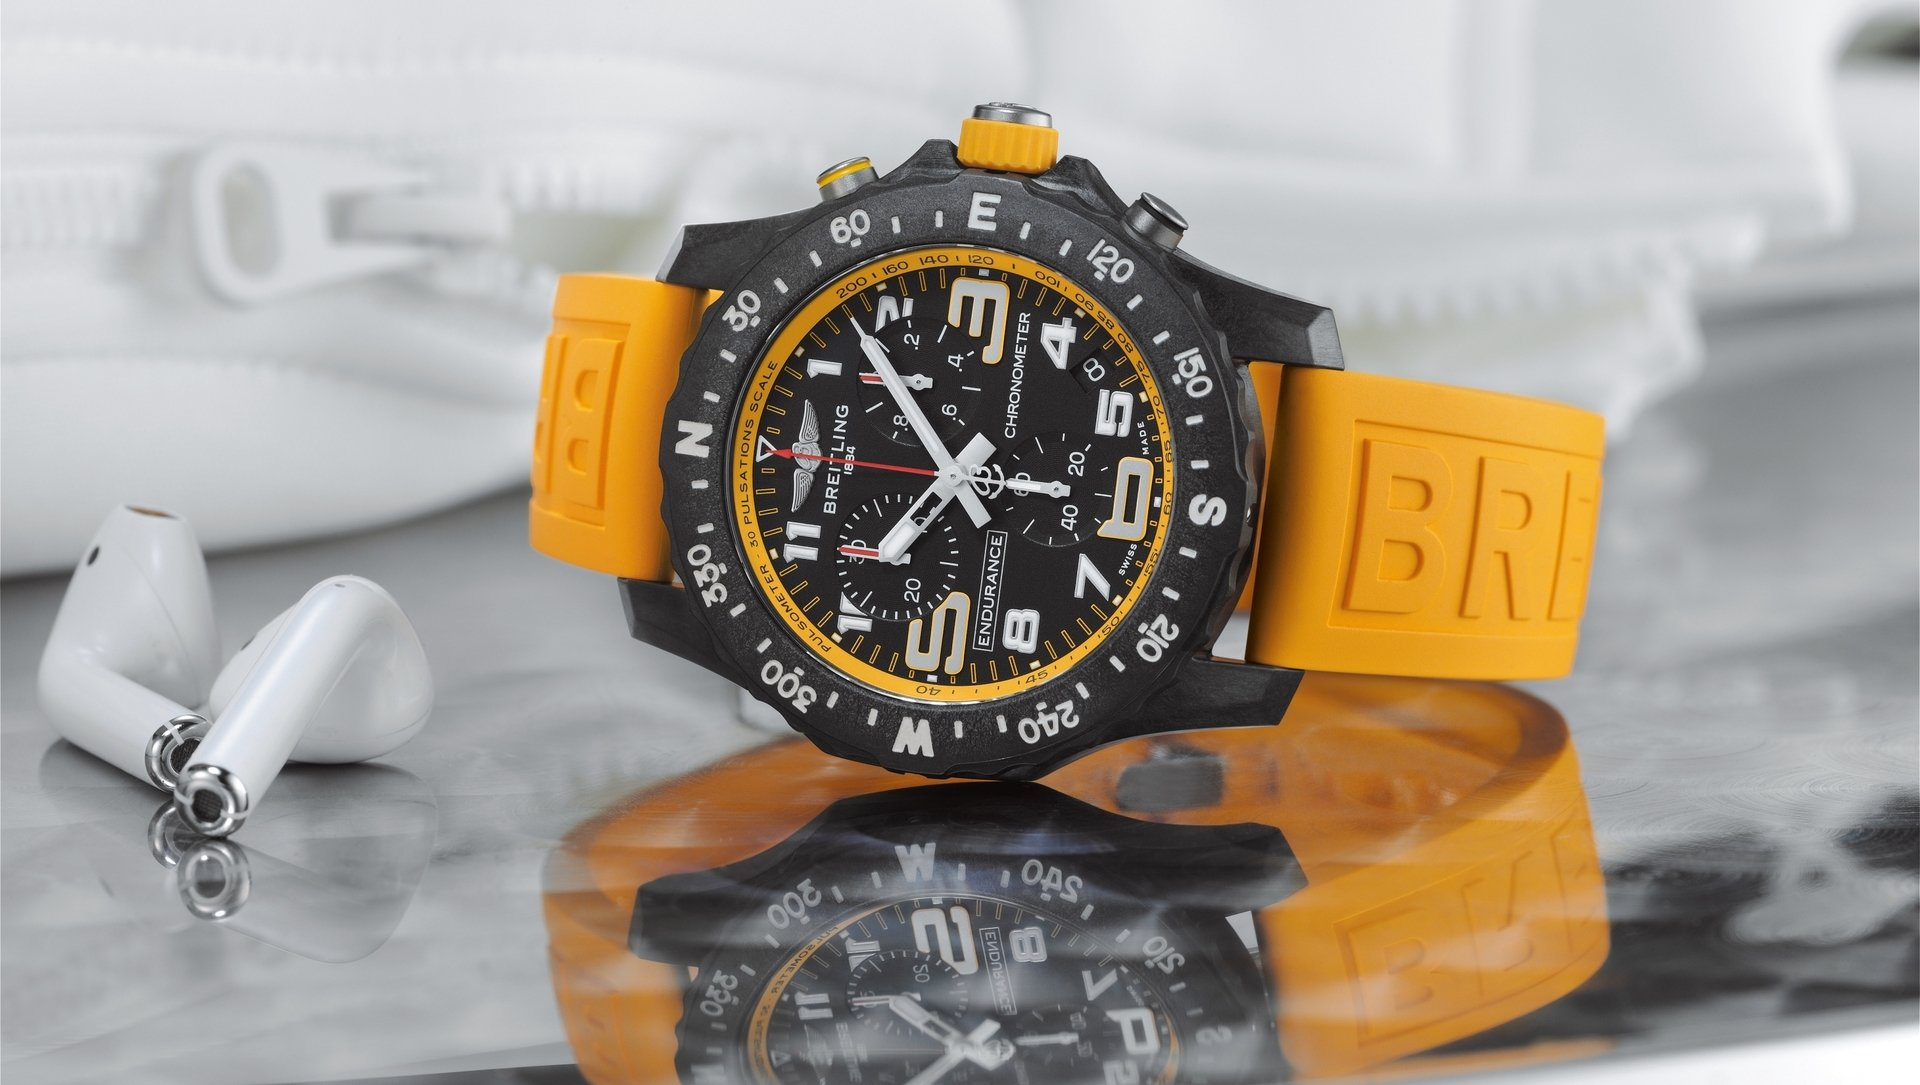 05_endurance-pro-with-a-yellow-inner-bezel-and-rubber-strap.jpg